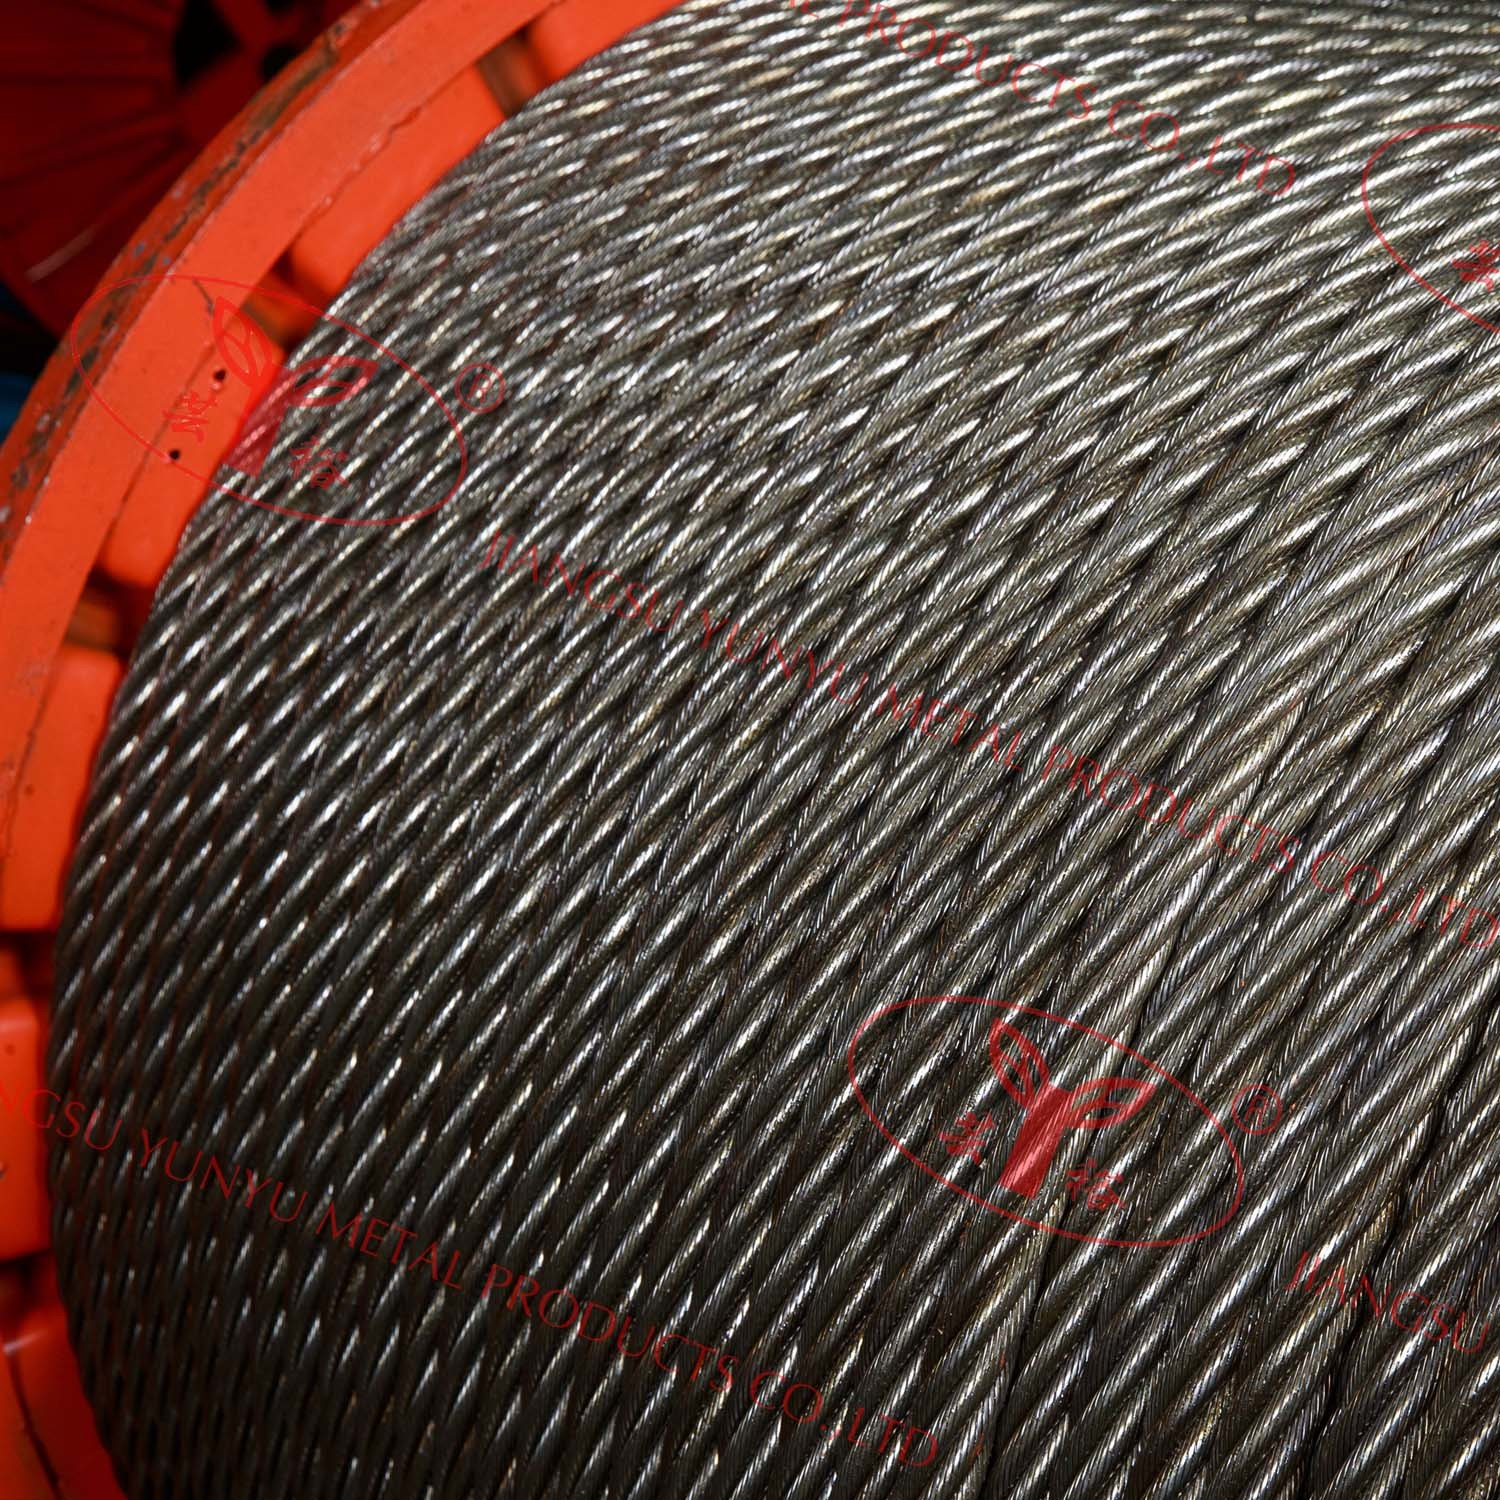 Compact Strand Wire Rope - 6xk31ws+Epiwrc